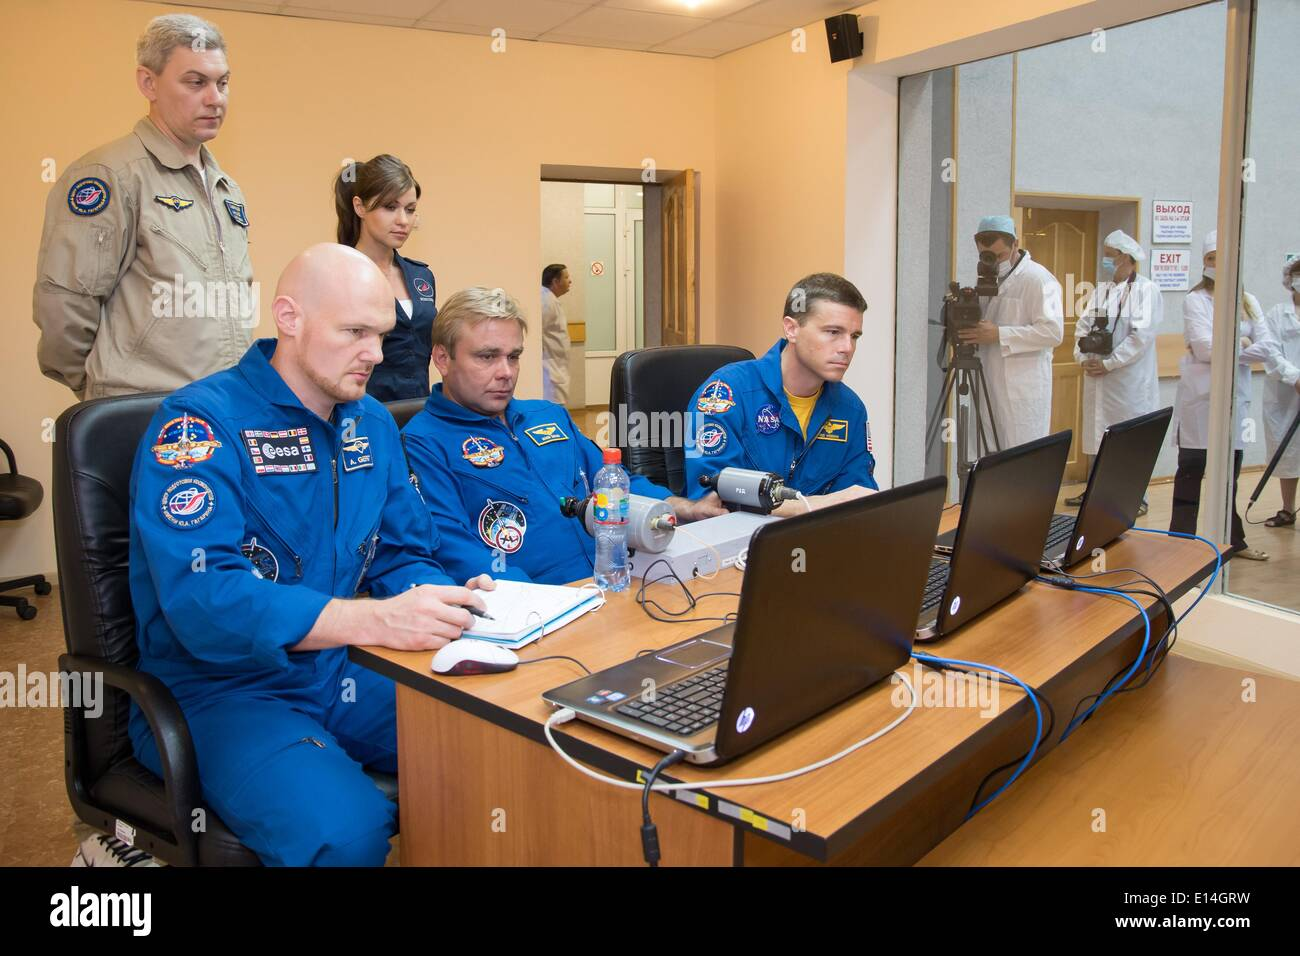 ISS Expedition 41 crew members Alexander Gerst of the European Space Agency (left), Max Suraev of the Russian Federal Space Agency, center, and Reid Wiseman of NASA practice rendezvous techniques on laptop simulators at the Cosmonaut Hotel May 21, 2014 in Baikonur, Kazakhstan. The trio will launch on May 29 in the Soyuz TMA-13M spacecraft from Baikonur for a 5 ½ month mission on the International Space Station. - Stock Image